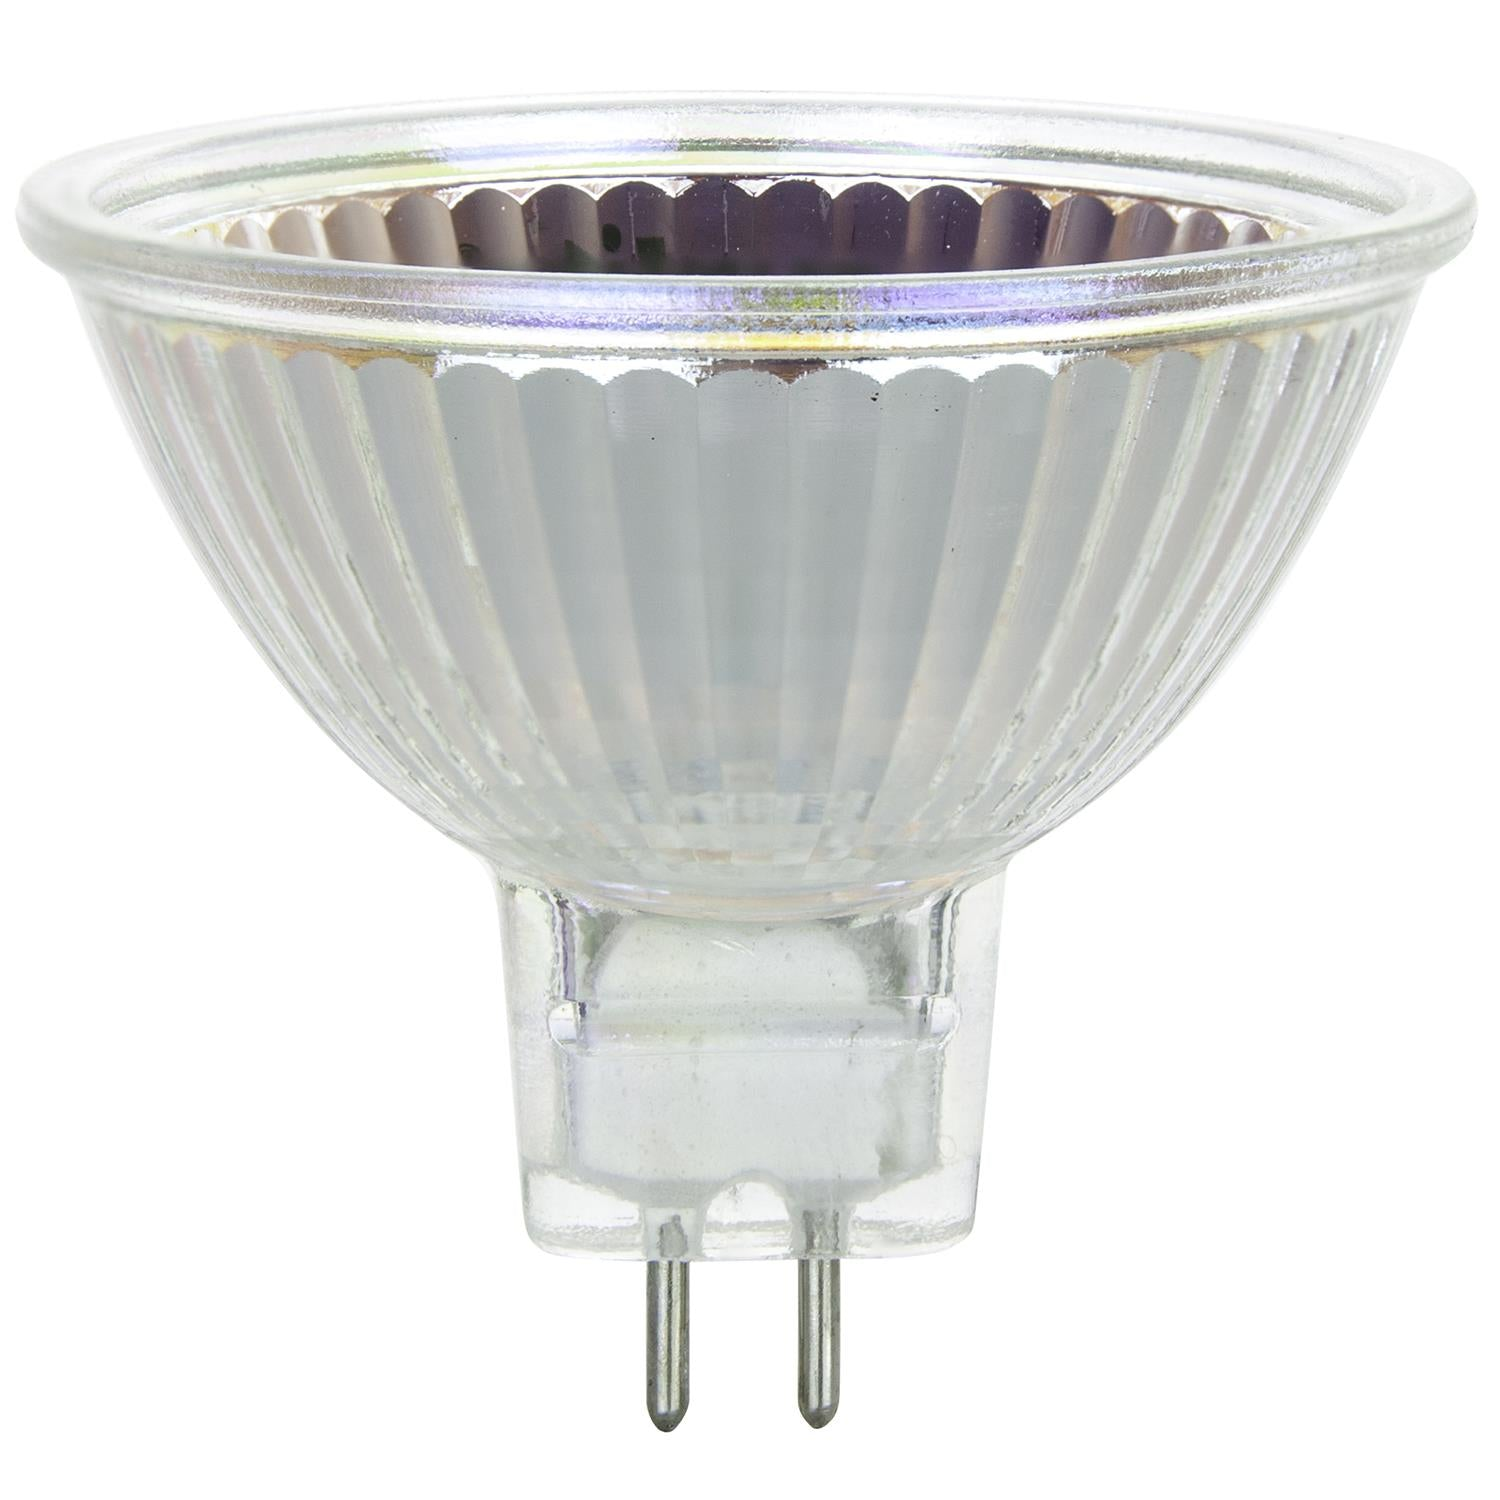 SUNLITE 20w MR16 Flood 38deg. GU5.3 Bi-Pin 3200K Halogen Bulb